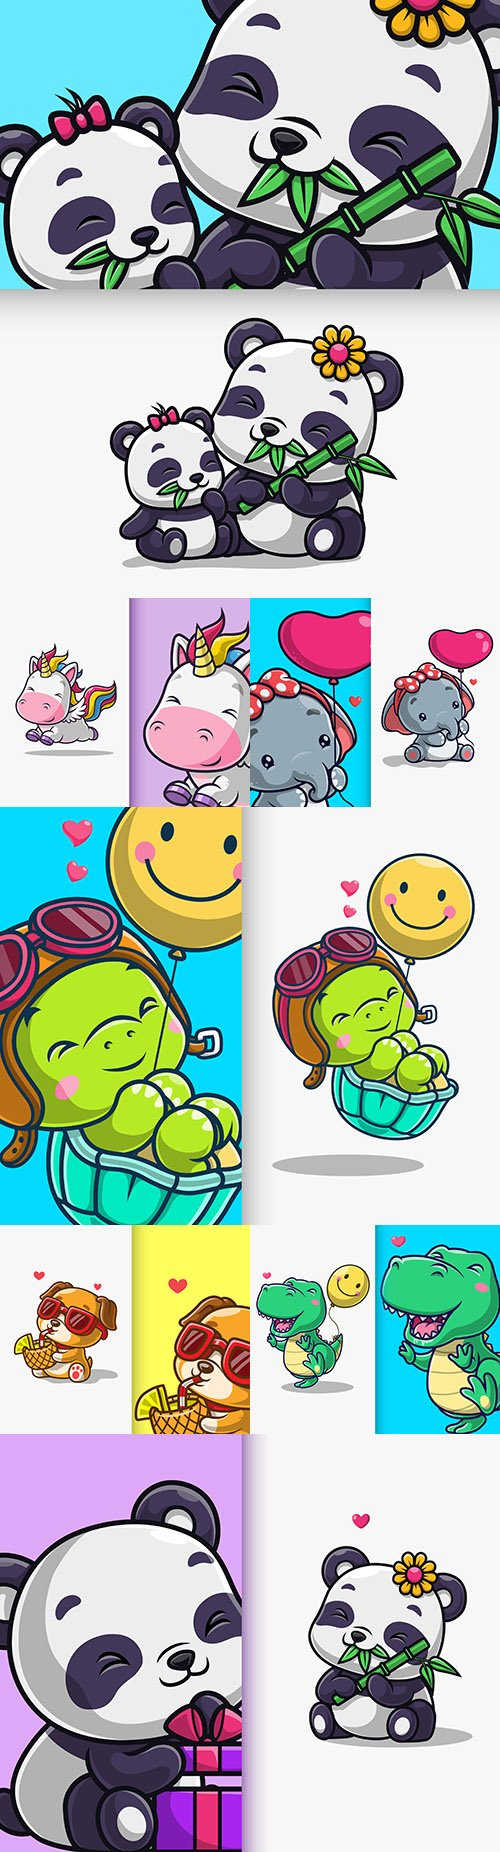 Cute Animals Mascot and Background Cartoon Character Illustration